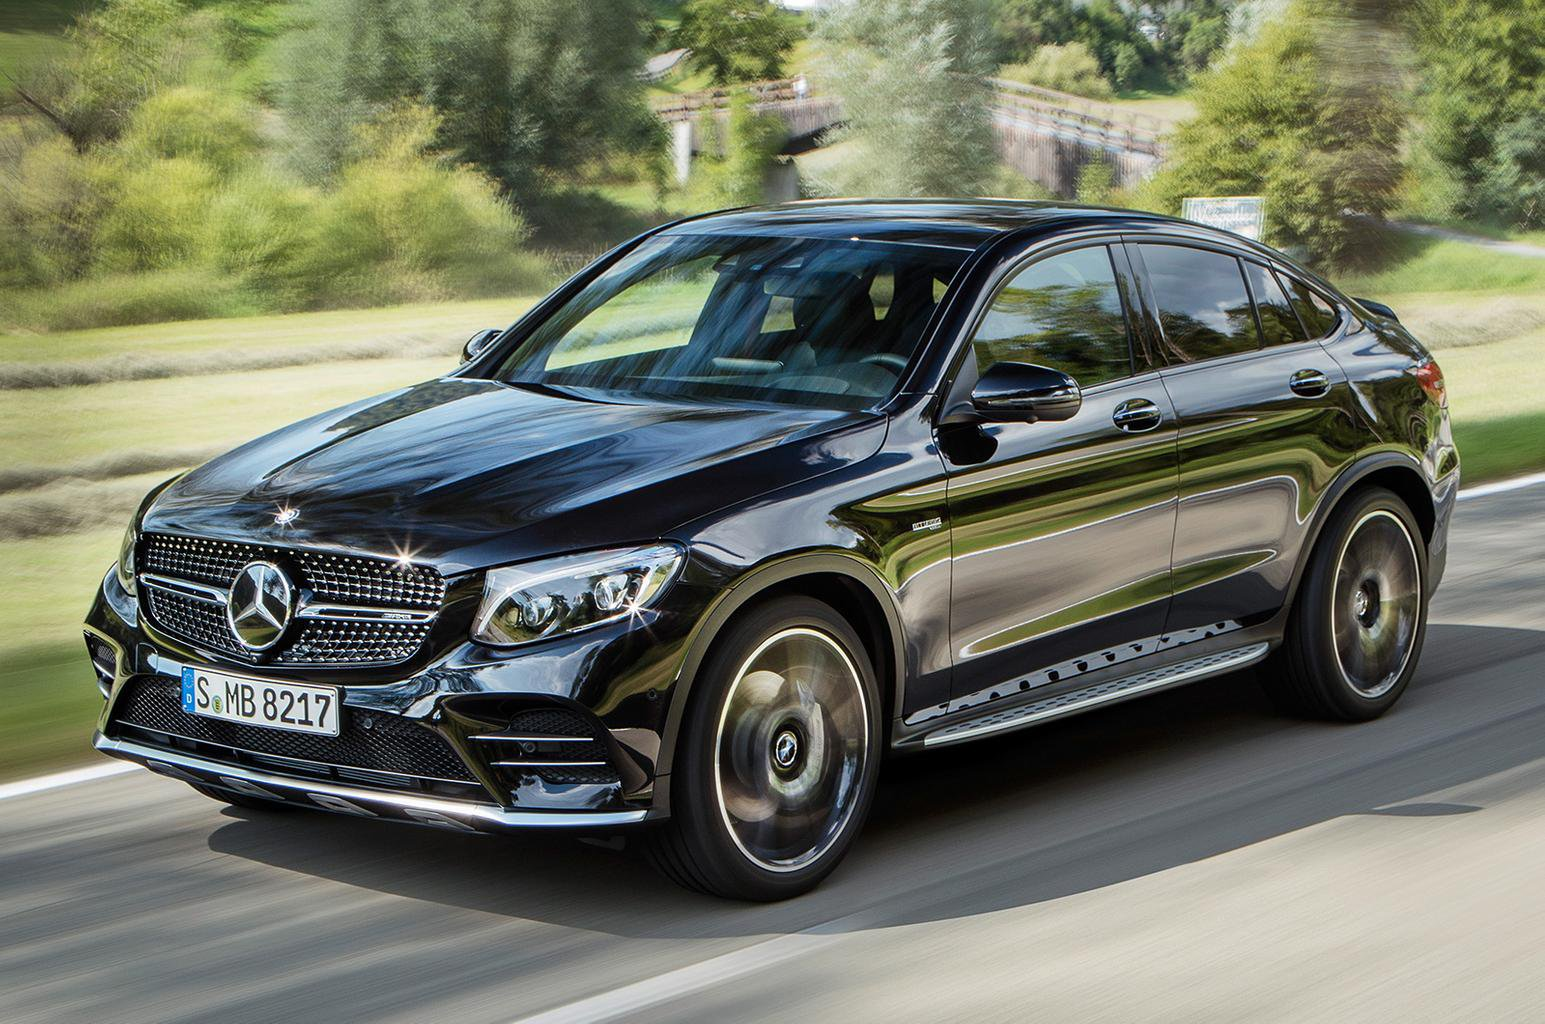 Best Cars For Less Than 600 Per Month